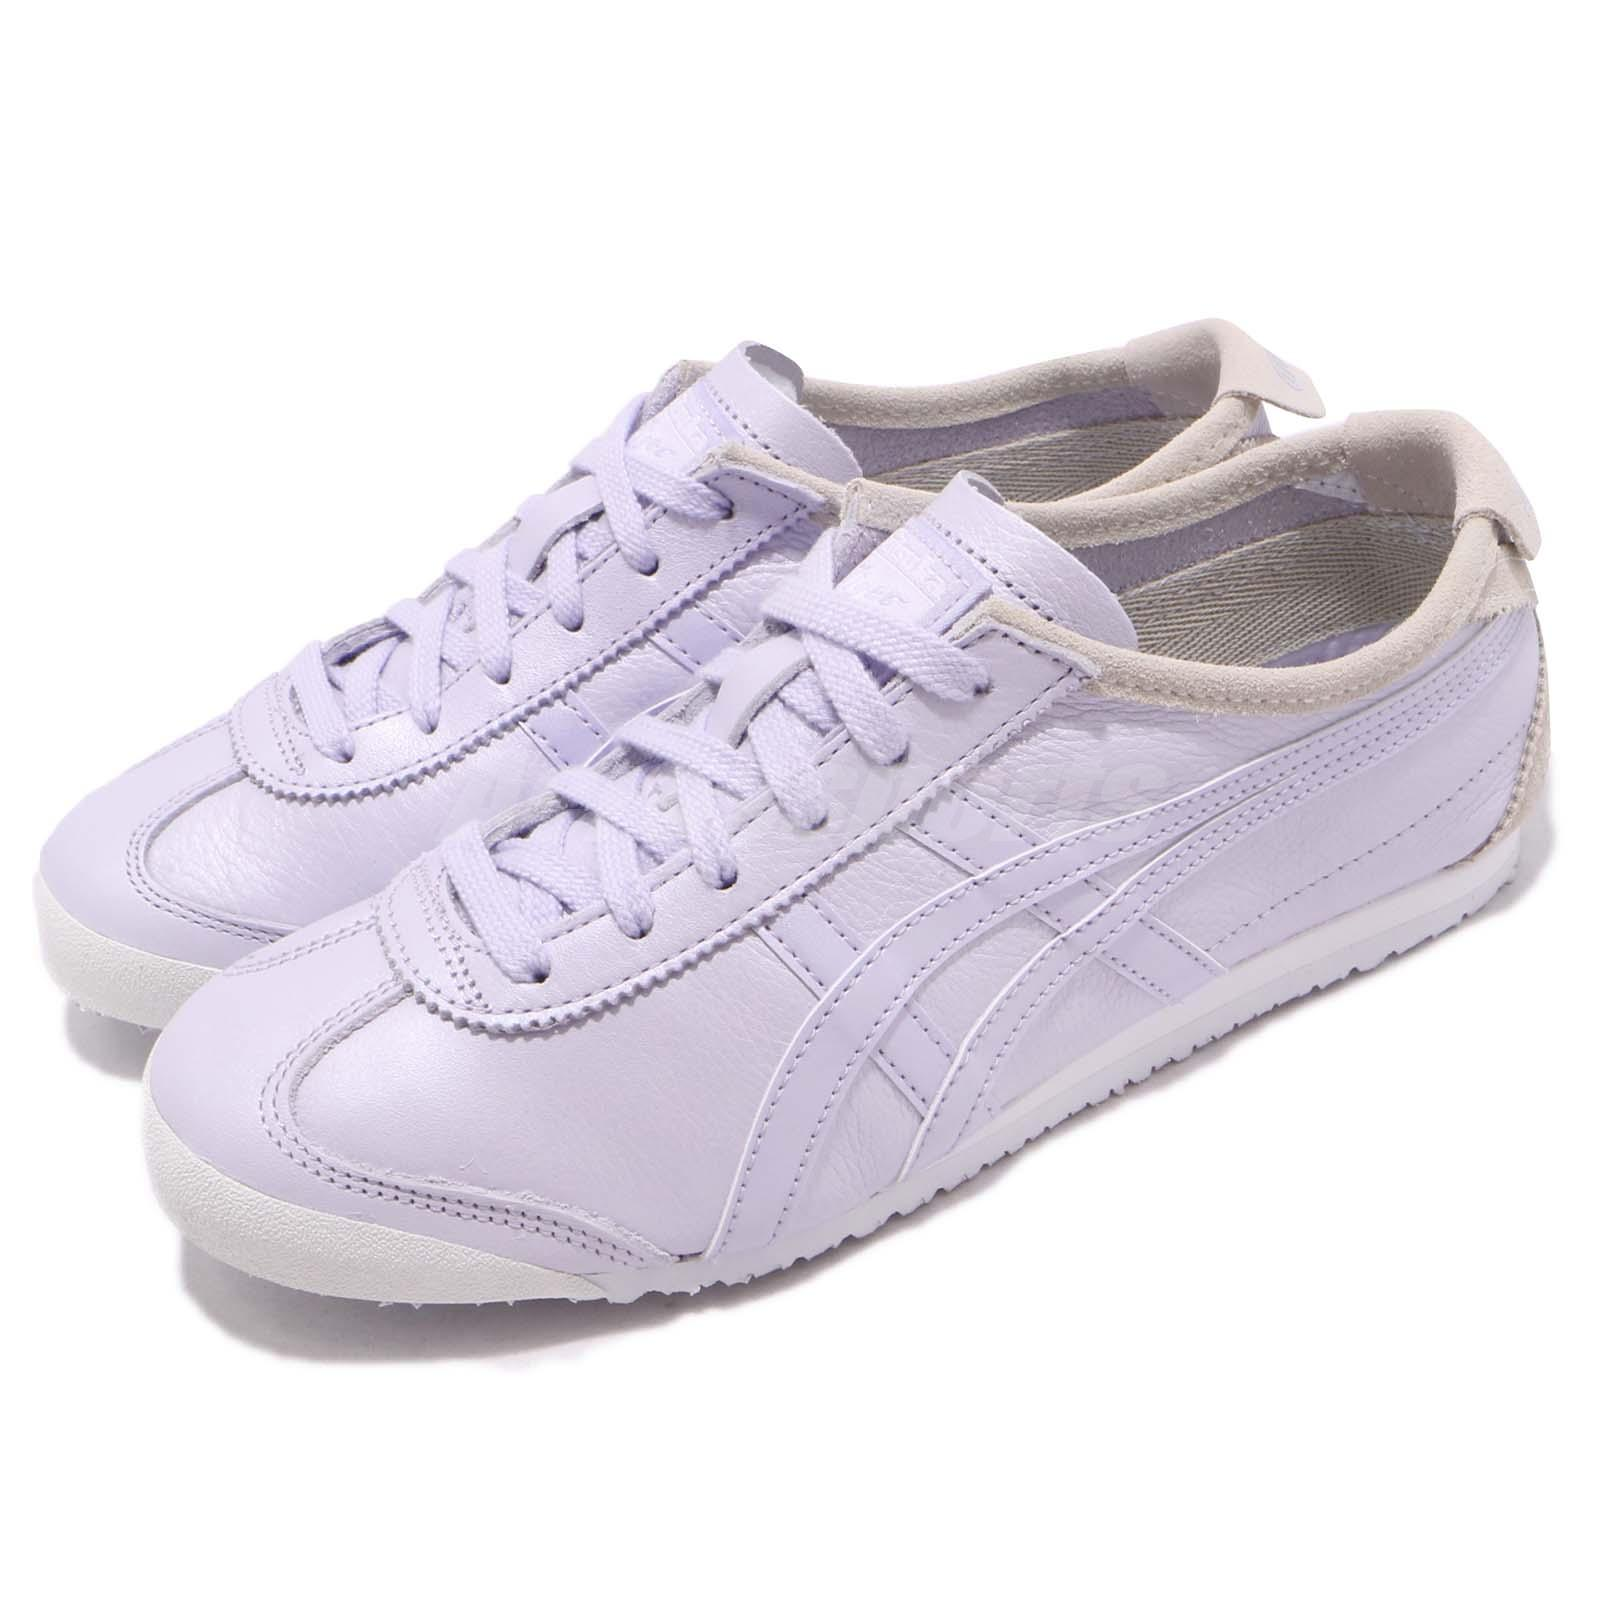 san francisco d1844 a447e Details about Asics Onitsuka Tiger Mexico 66 Lilac Opal Purple Women  Running Shoe 1182A007-400